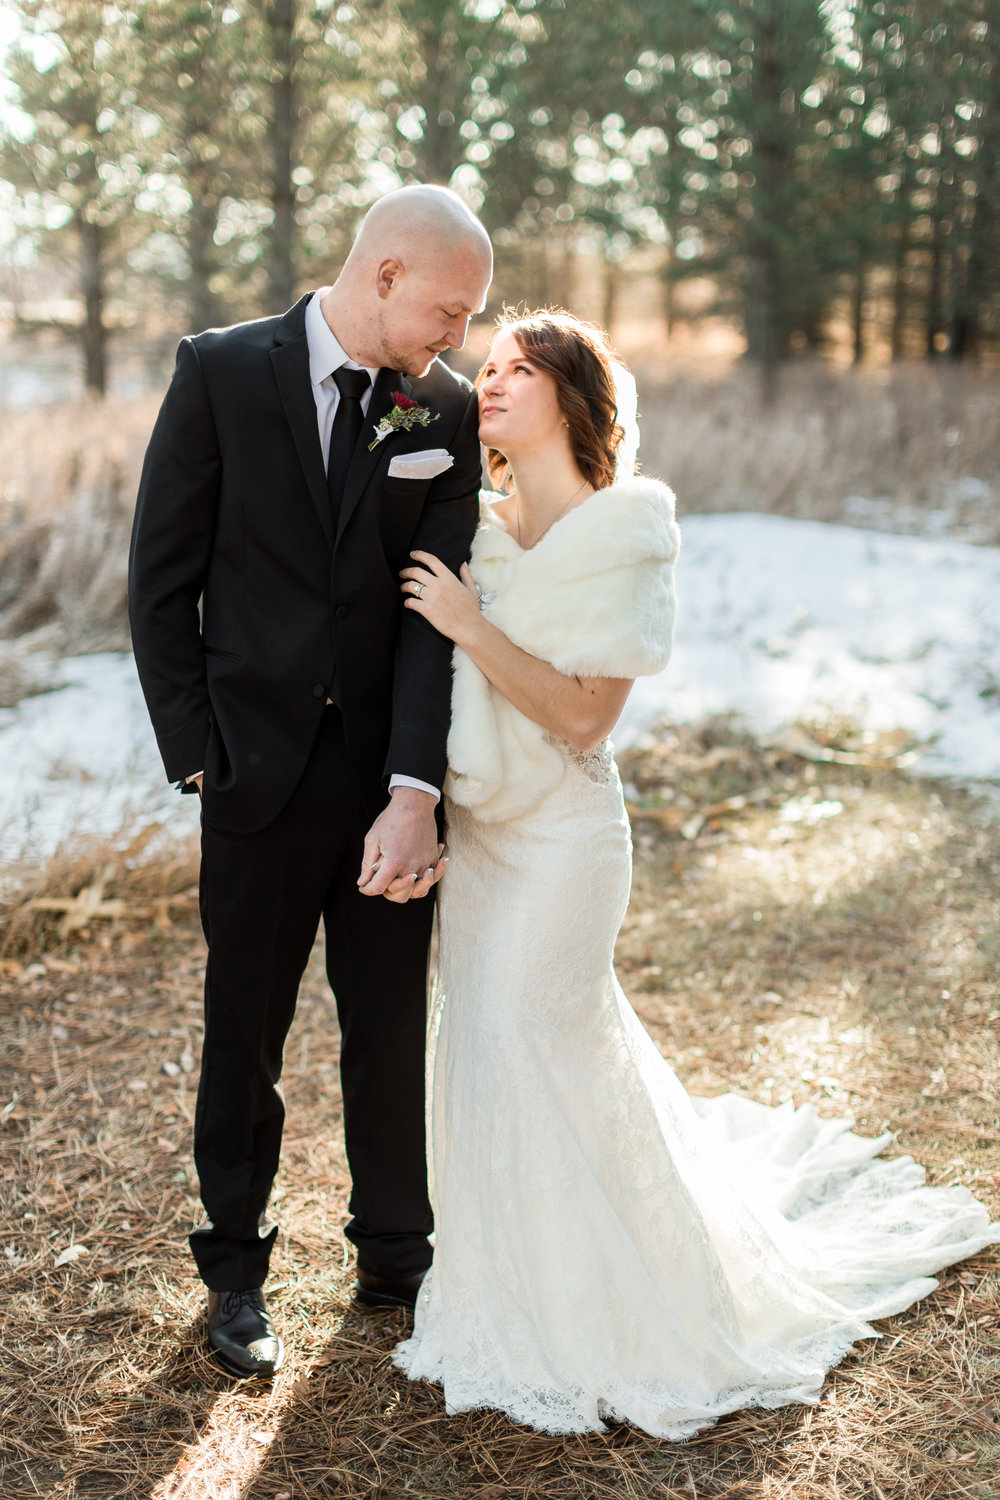 Abigail Berge Photography_KnudtsonWedding-186.jpg